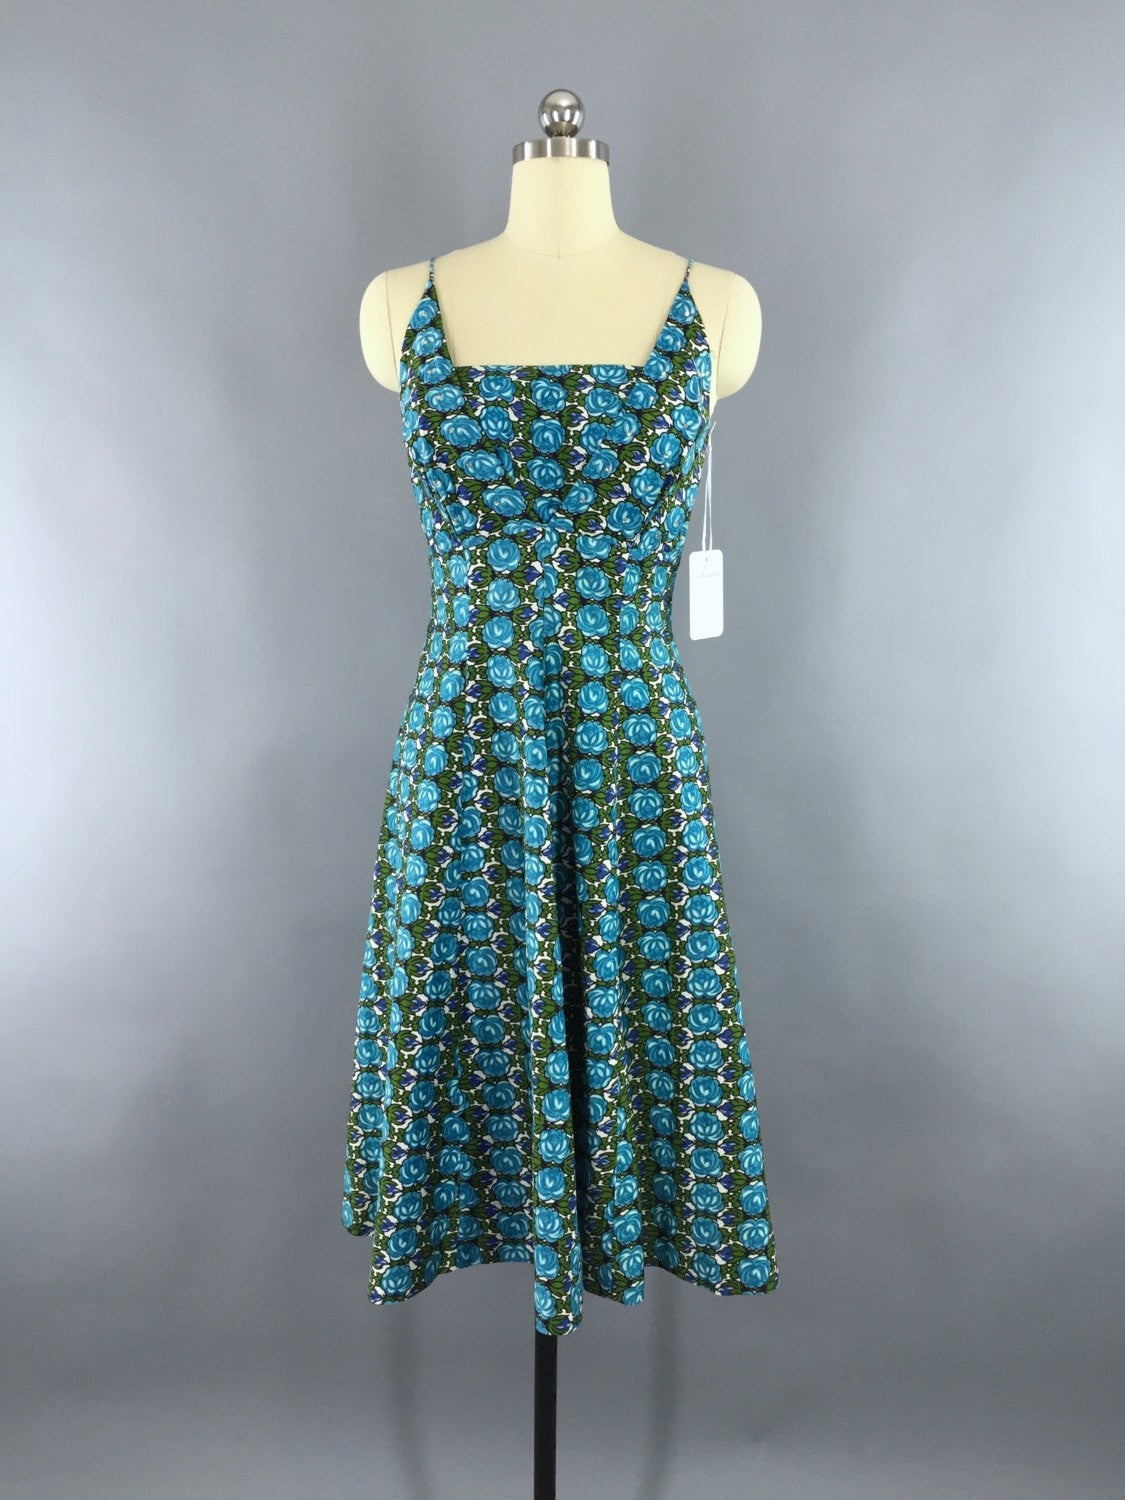 Vintage 1950s Day Dress / Blue Floral Print Sundress Dress ThisBlueBird